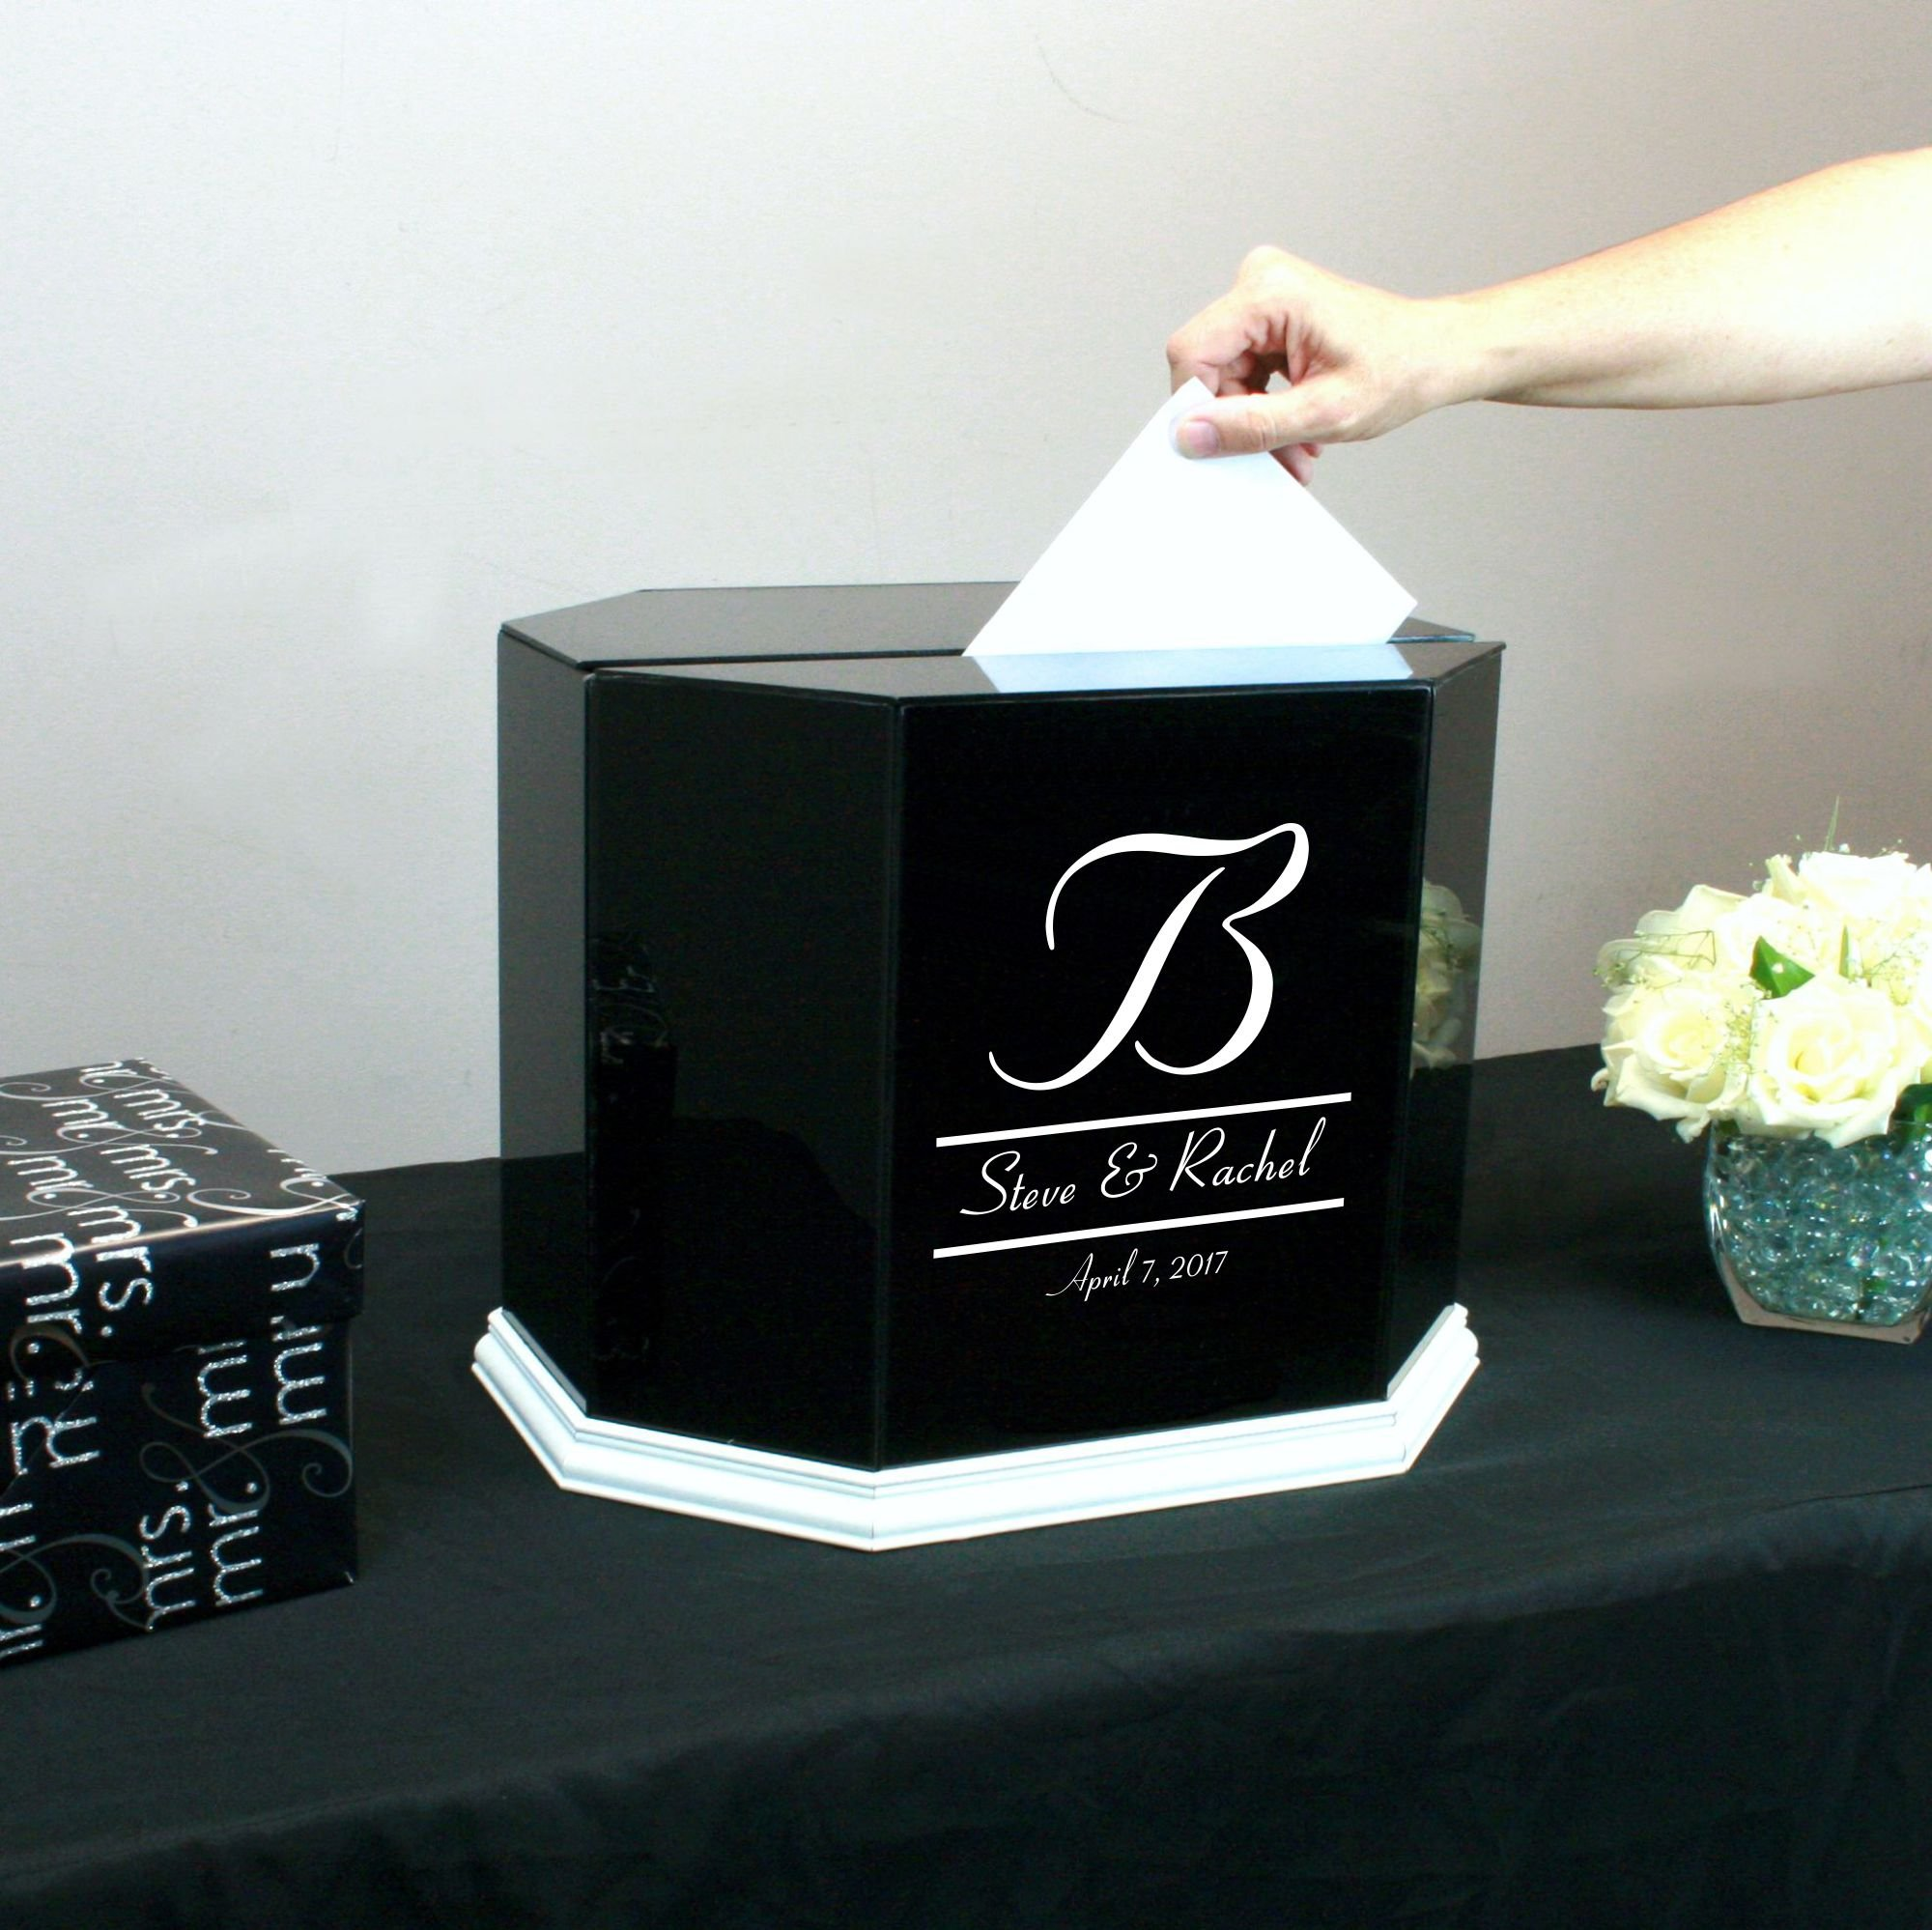 Personalized Wedding Card Box Black Glass with White Trim by Perfect Cases